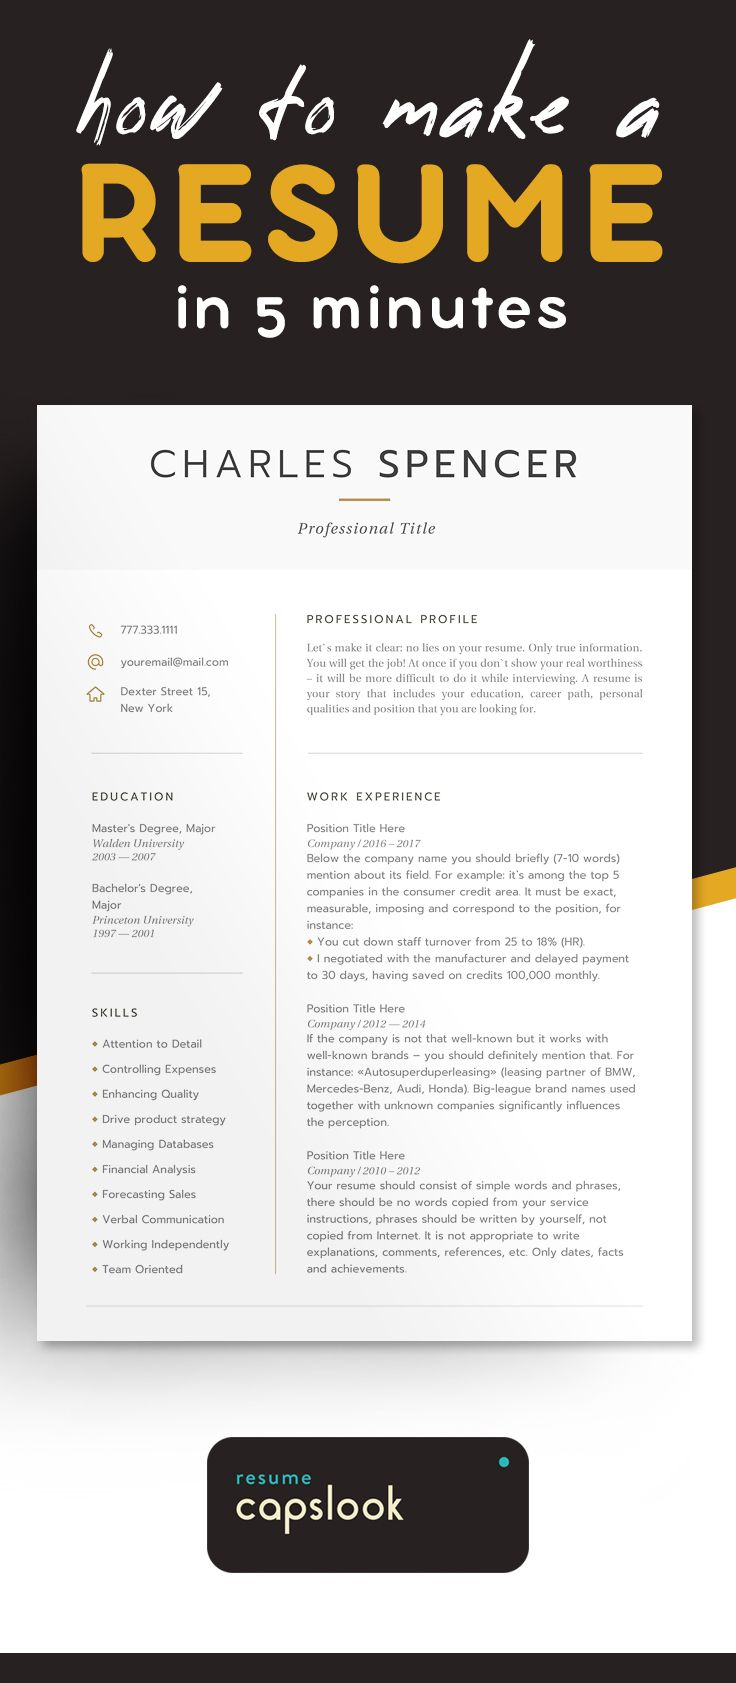 45 Best Modern Resume Templates Download On Etsy 2018 Images On